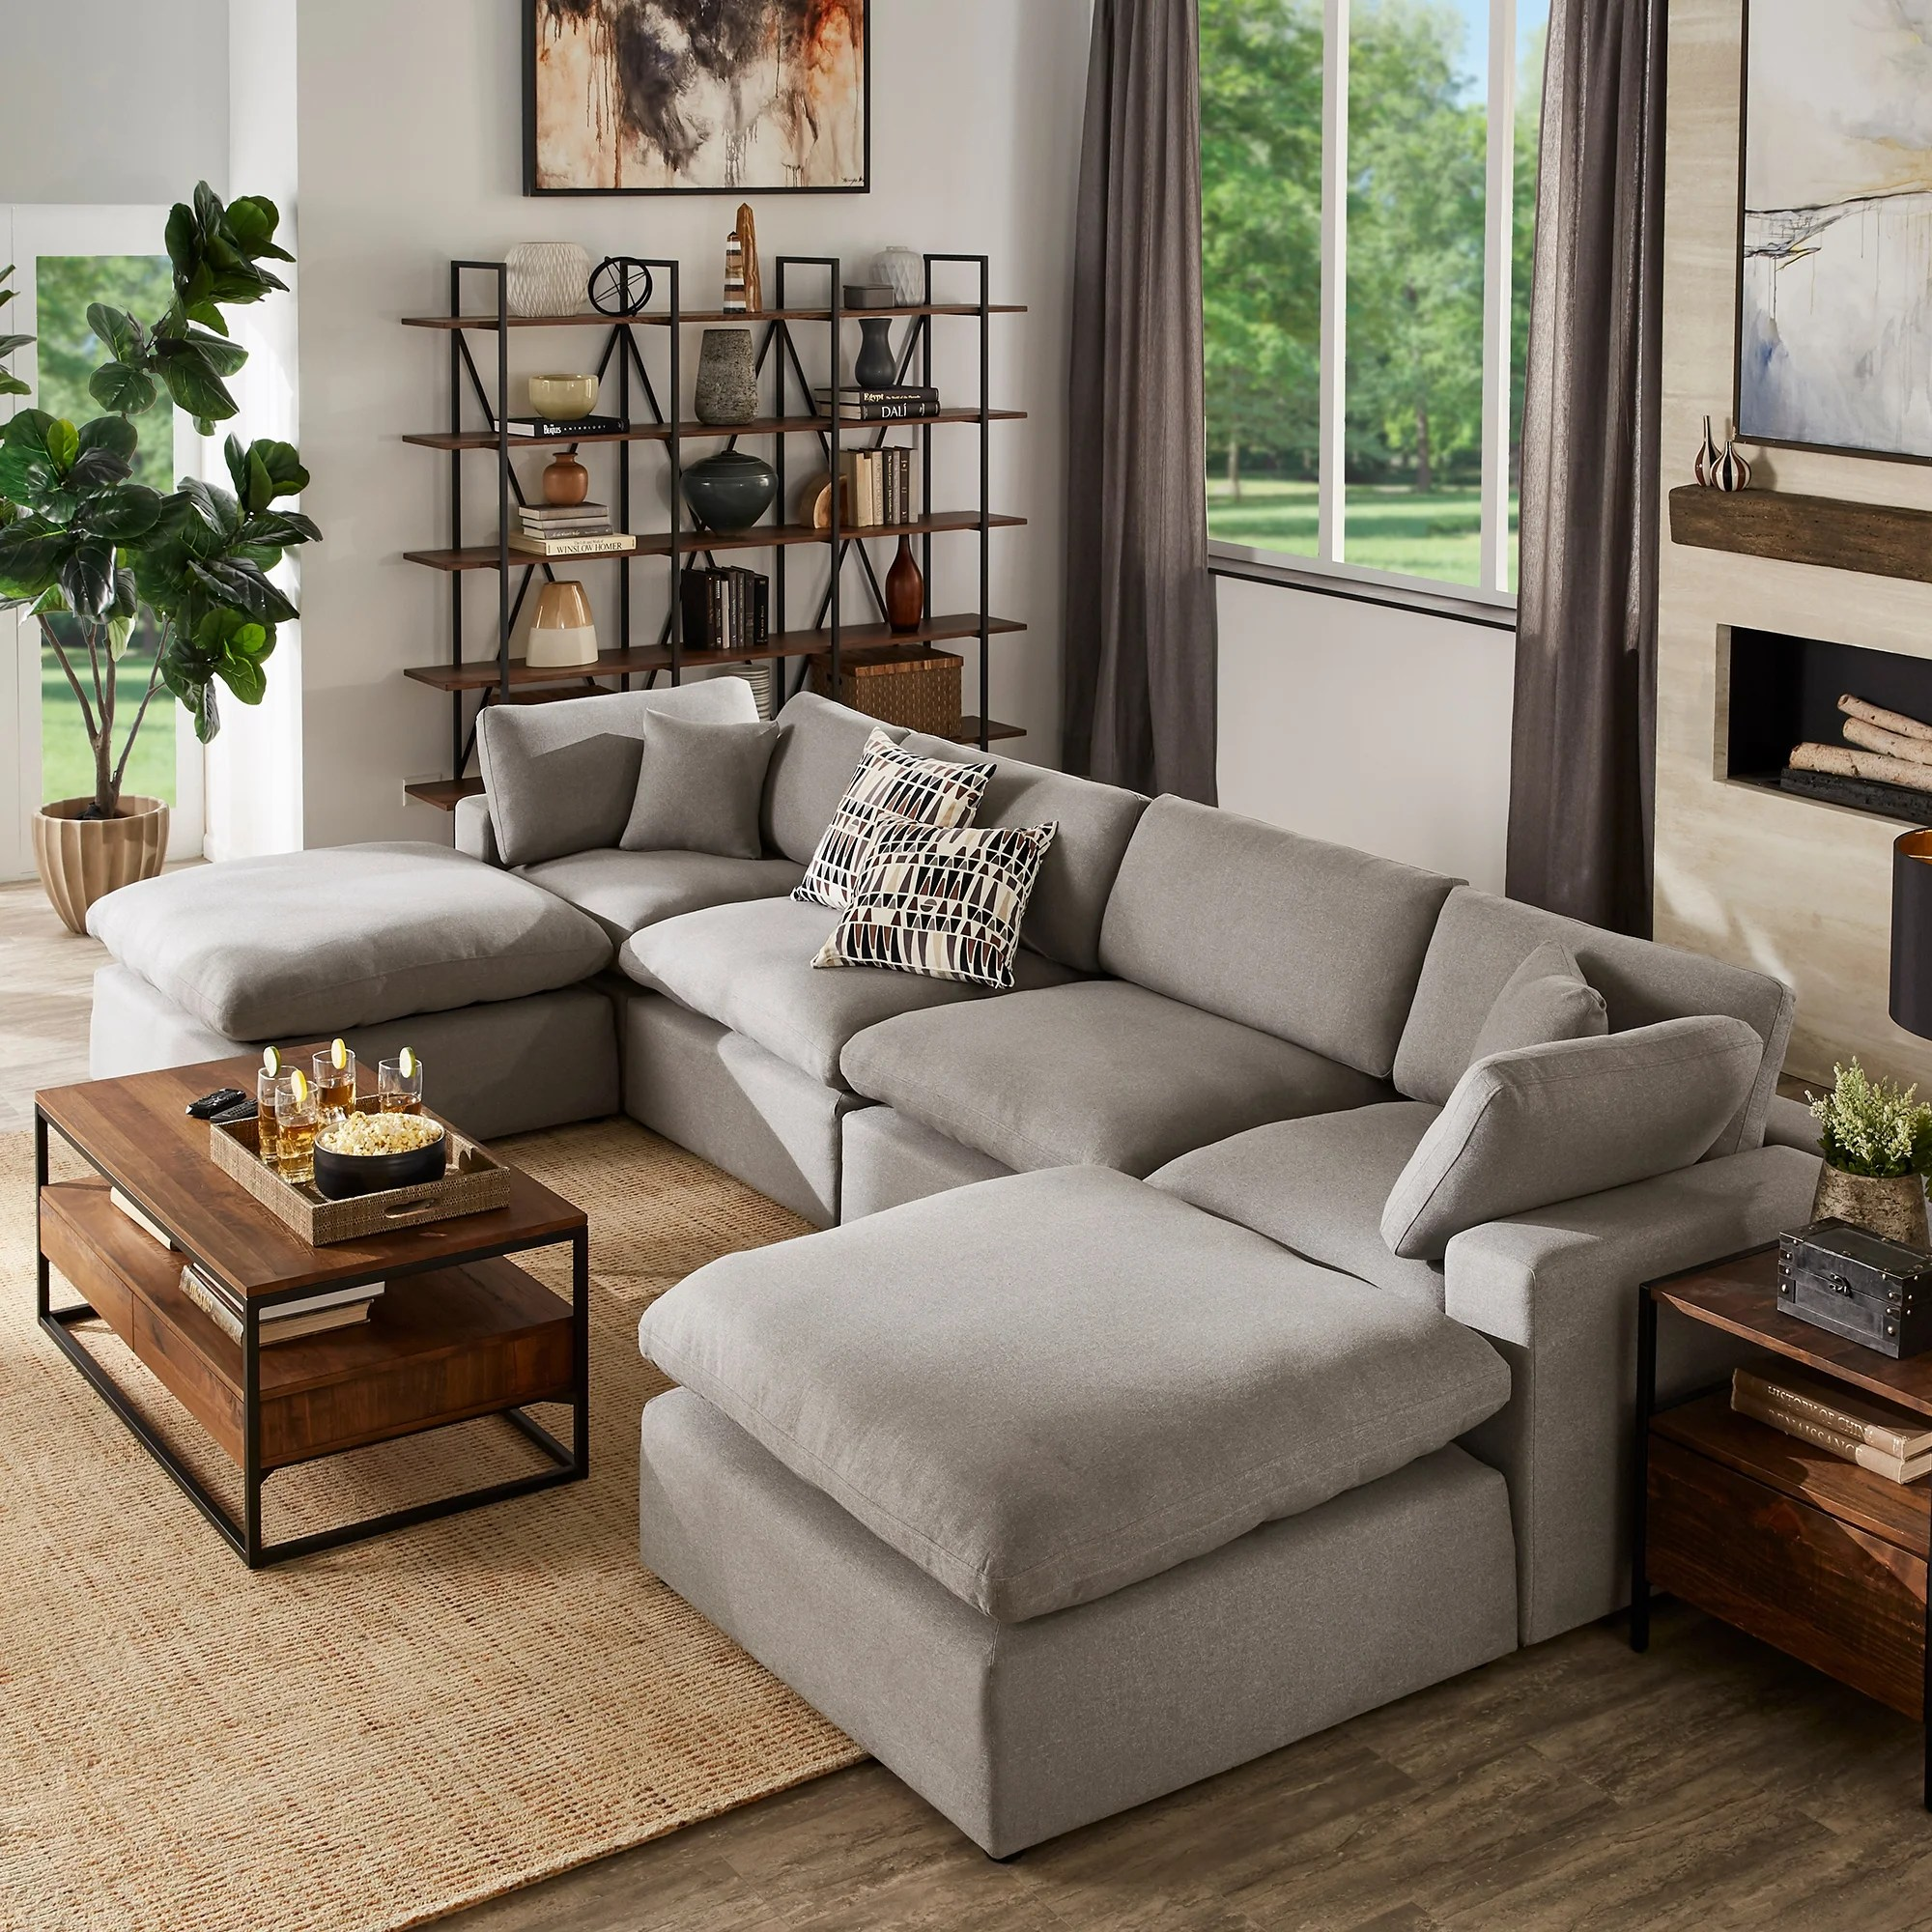 anka grey linen down filled cushioned u shaped sectional sofa with two ottomans by inspire q modern